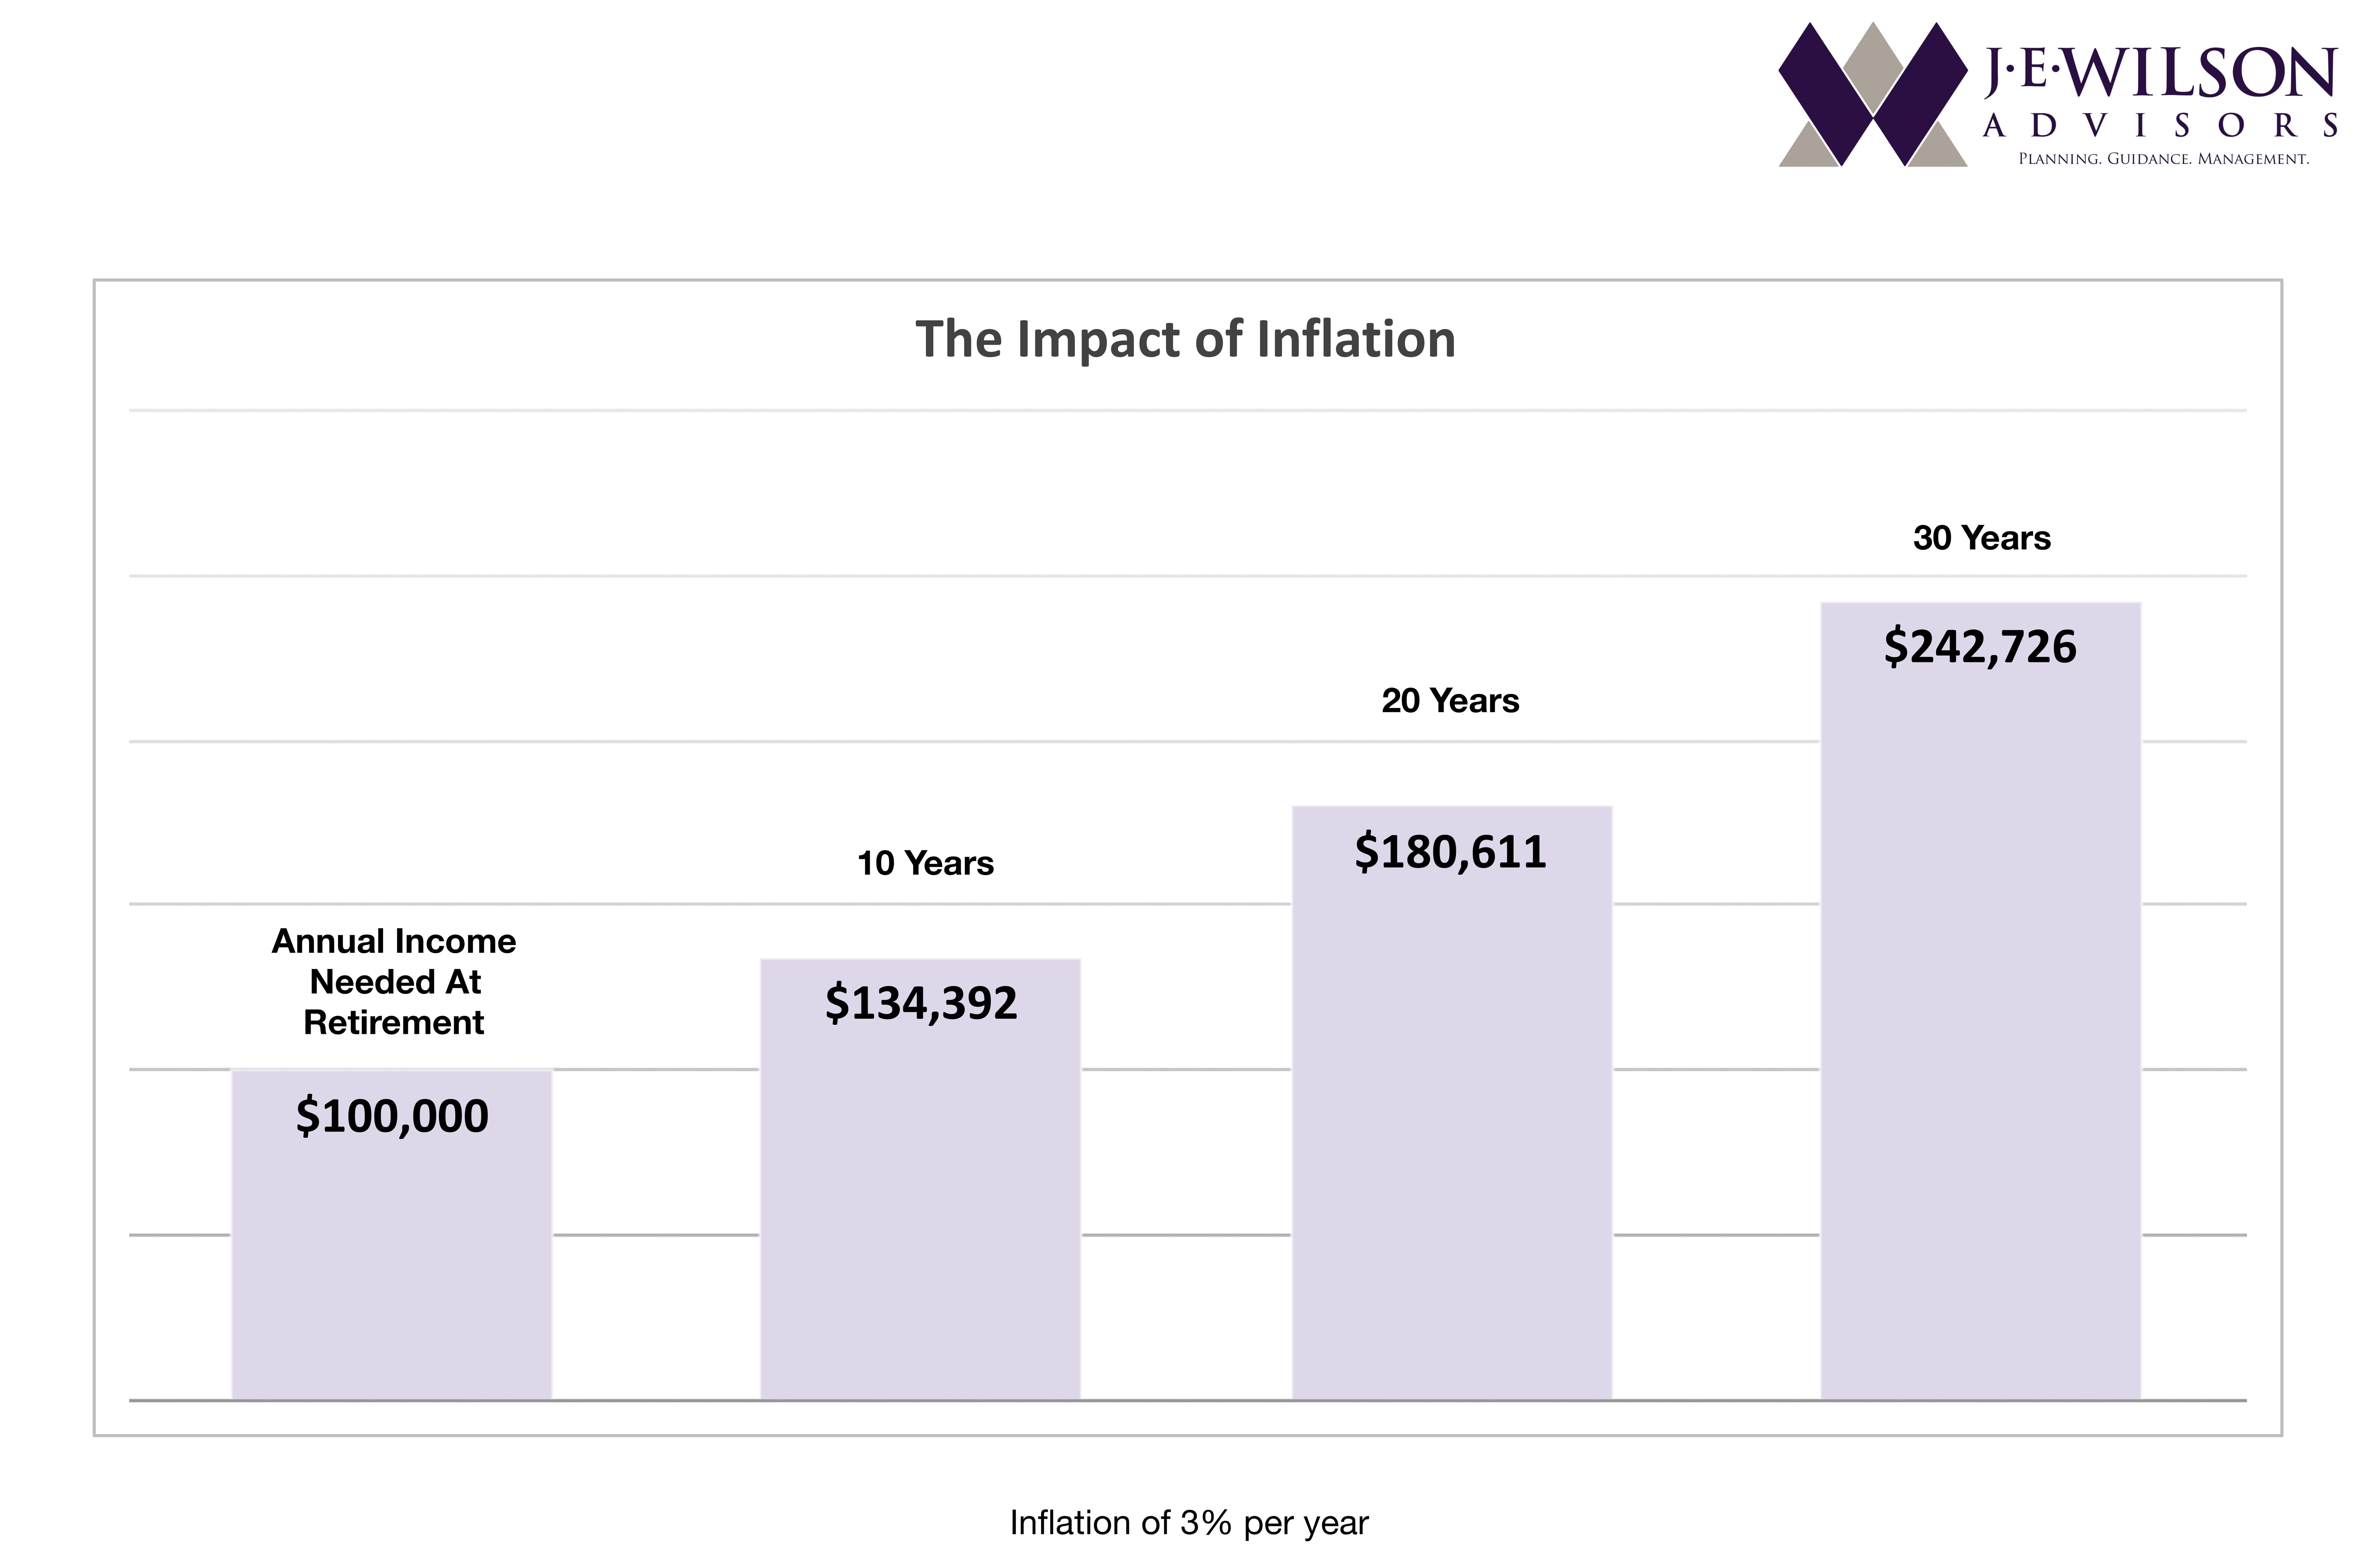 Chart Showing Impact of Inflation over 30 Years